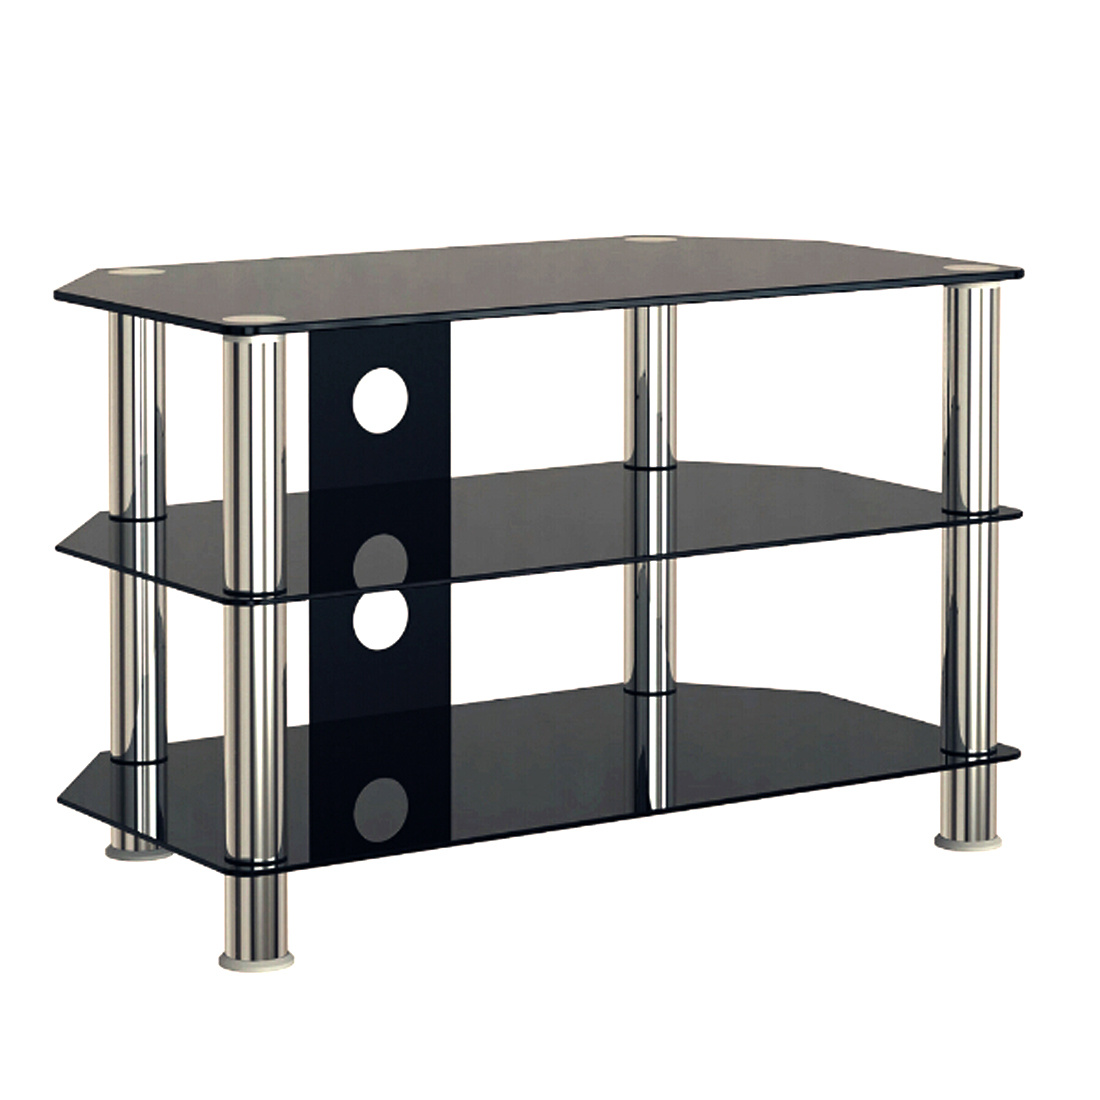 desktop black glass tv stand cabinet gloss 3 shelf for 30 55 inch lcd led screen ebay. Black Bedroom Furniture Sets. Home Design Ideas